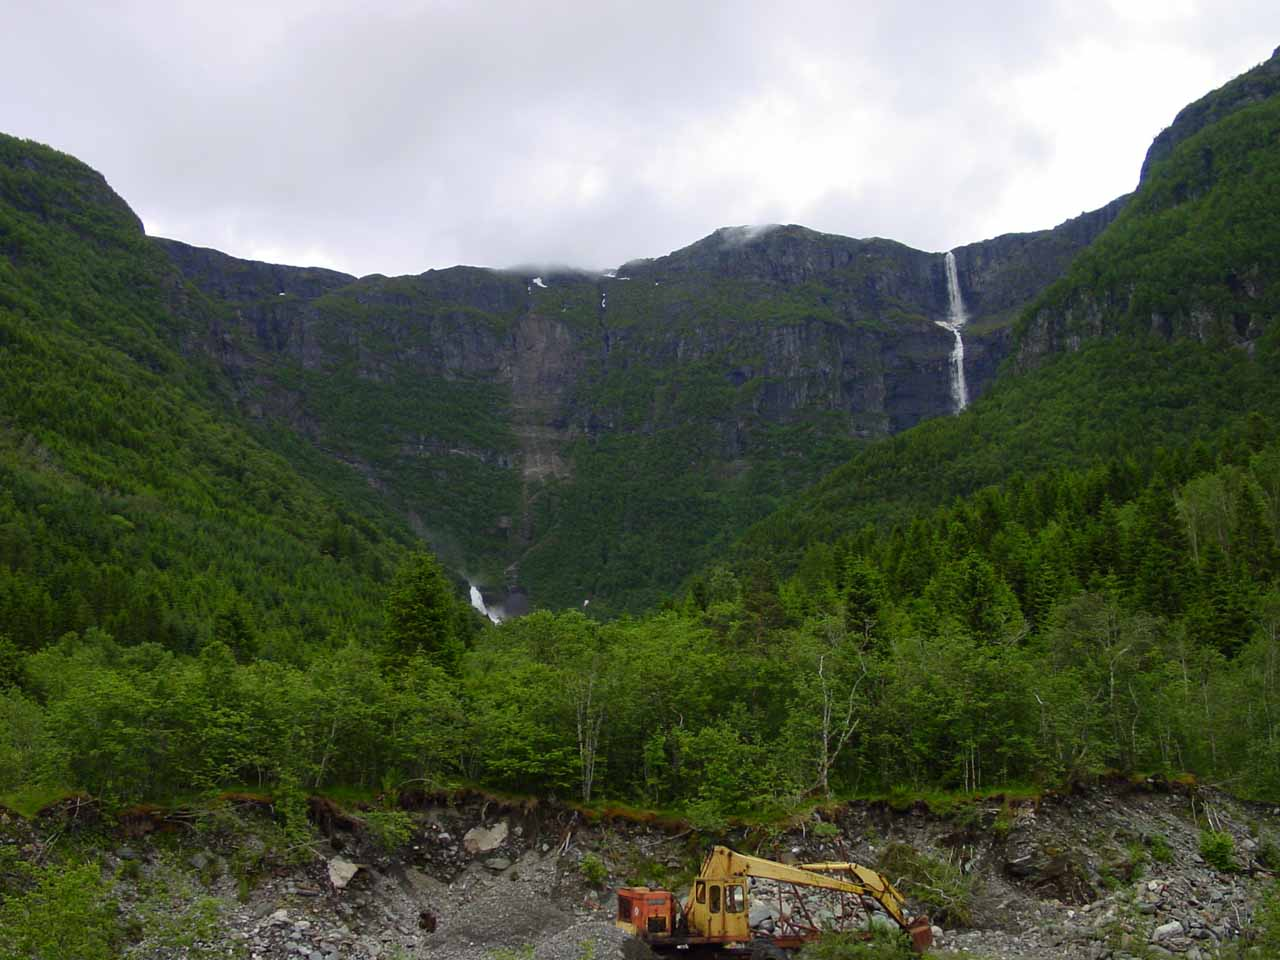 Looking past some construction vehicle towards both Skrikjofossen (right) and Opofossen (barely visible on the left)